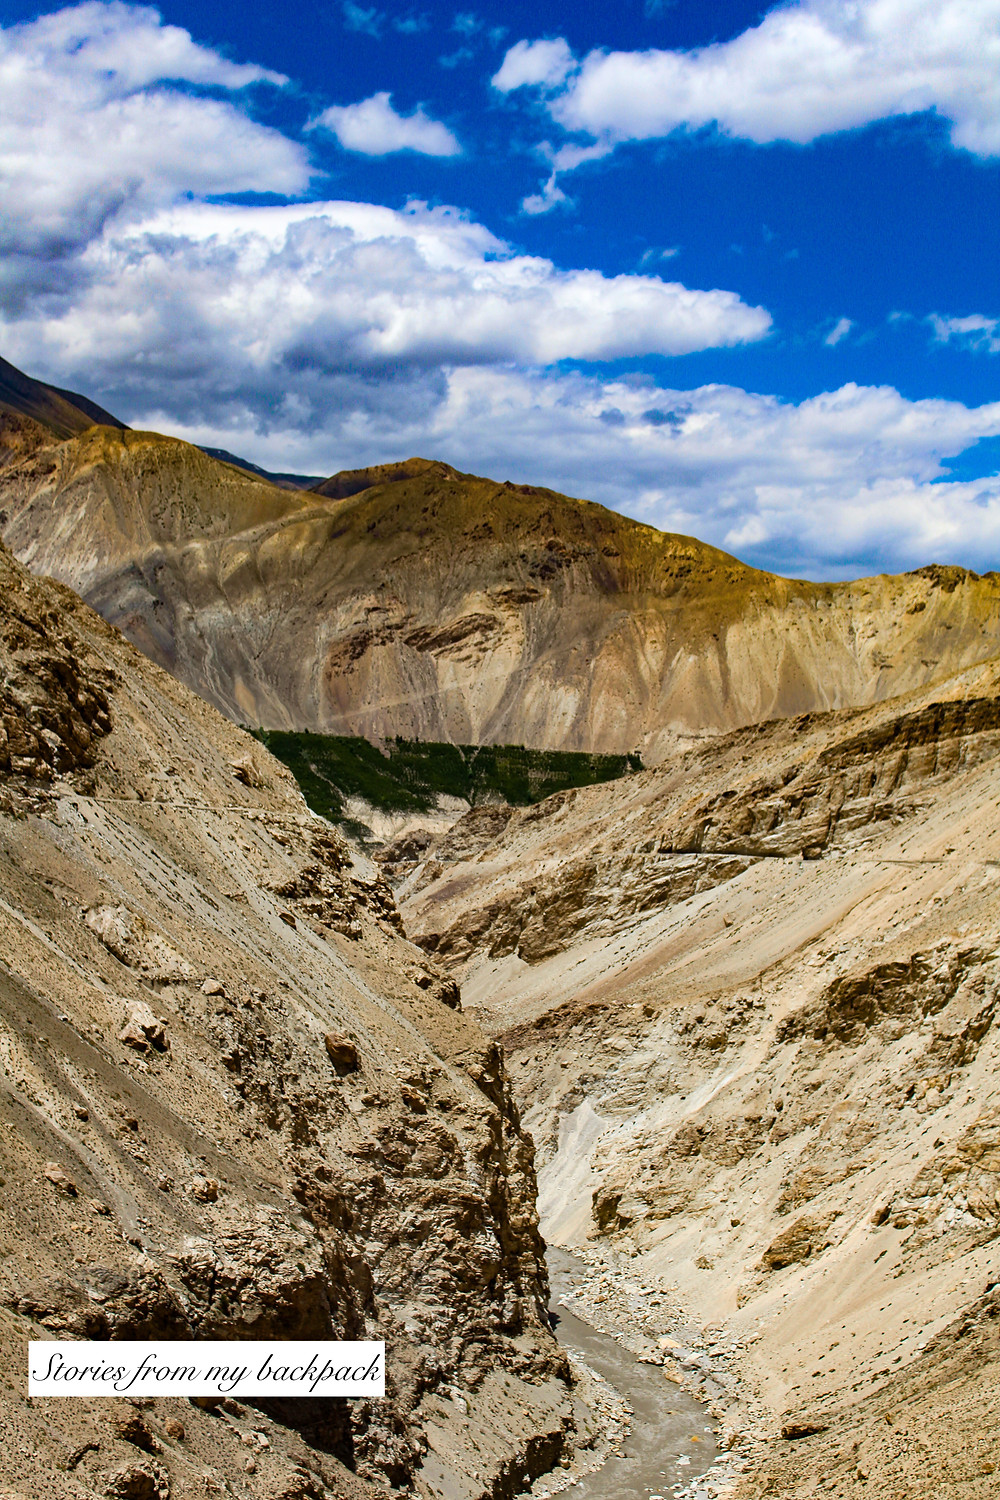 how to deal with AMS, AMS in spiti, weather in spiti, best time to travel to spiti, what to pack for a trip to spiti, things you need to know before booking a trip to spiti, best route to take to spiti